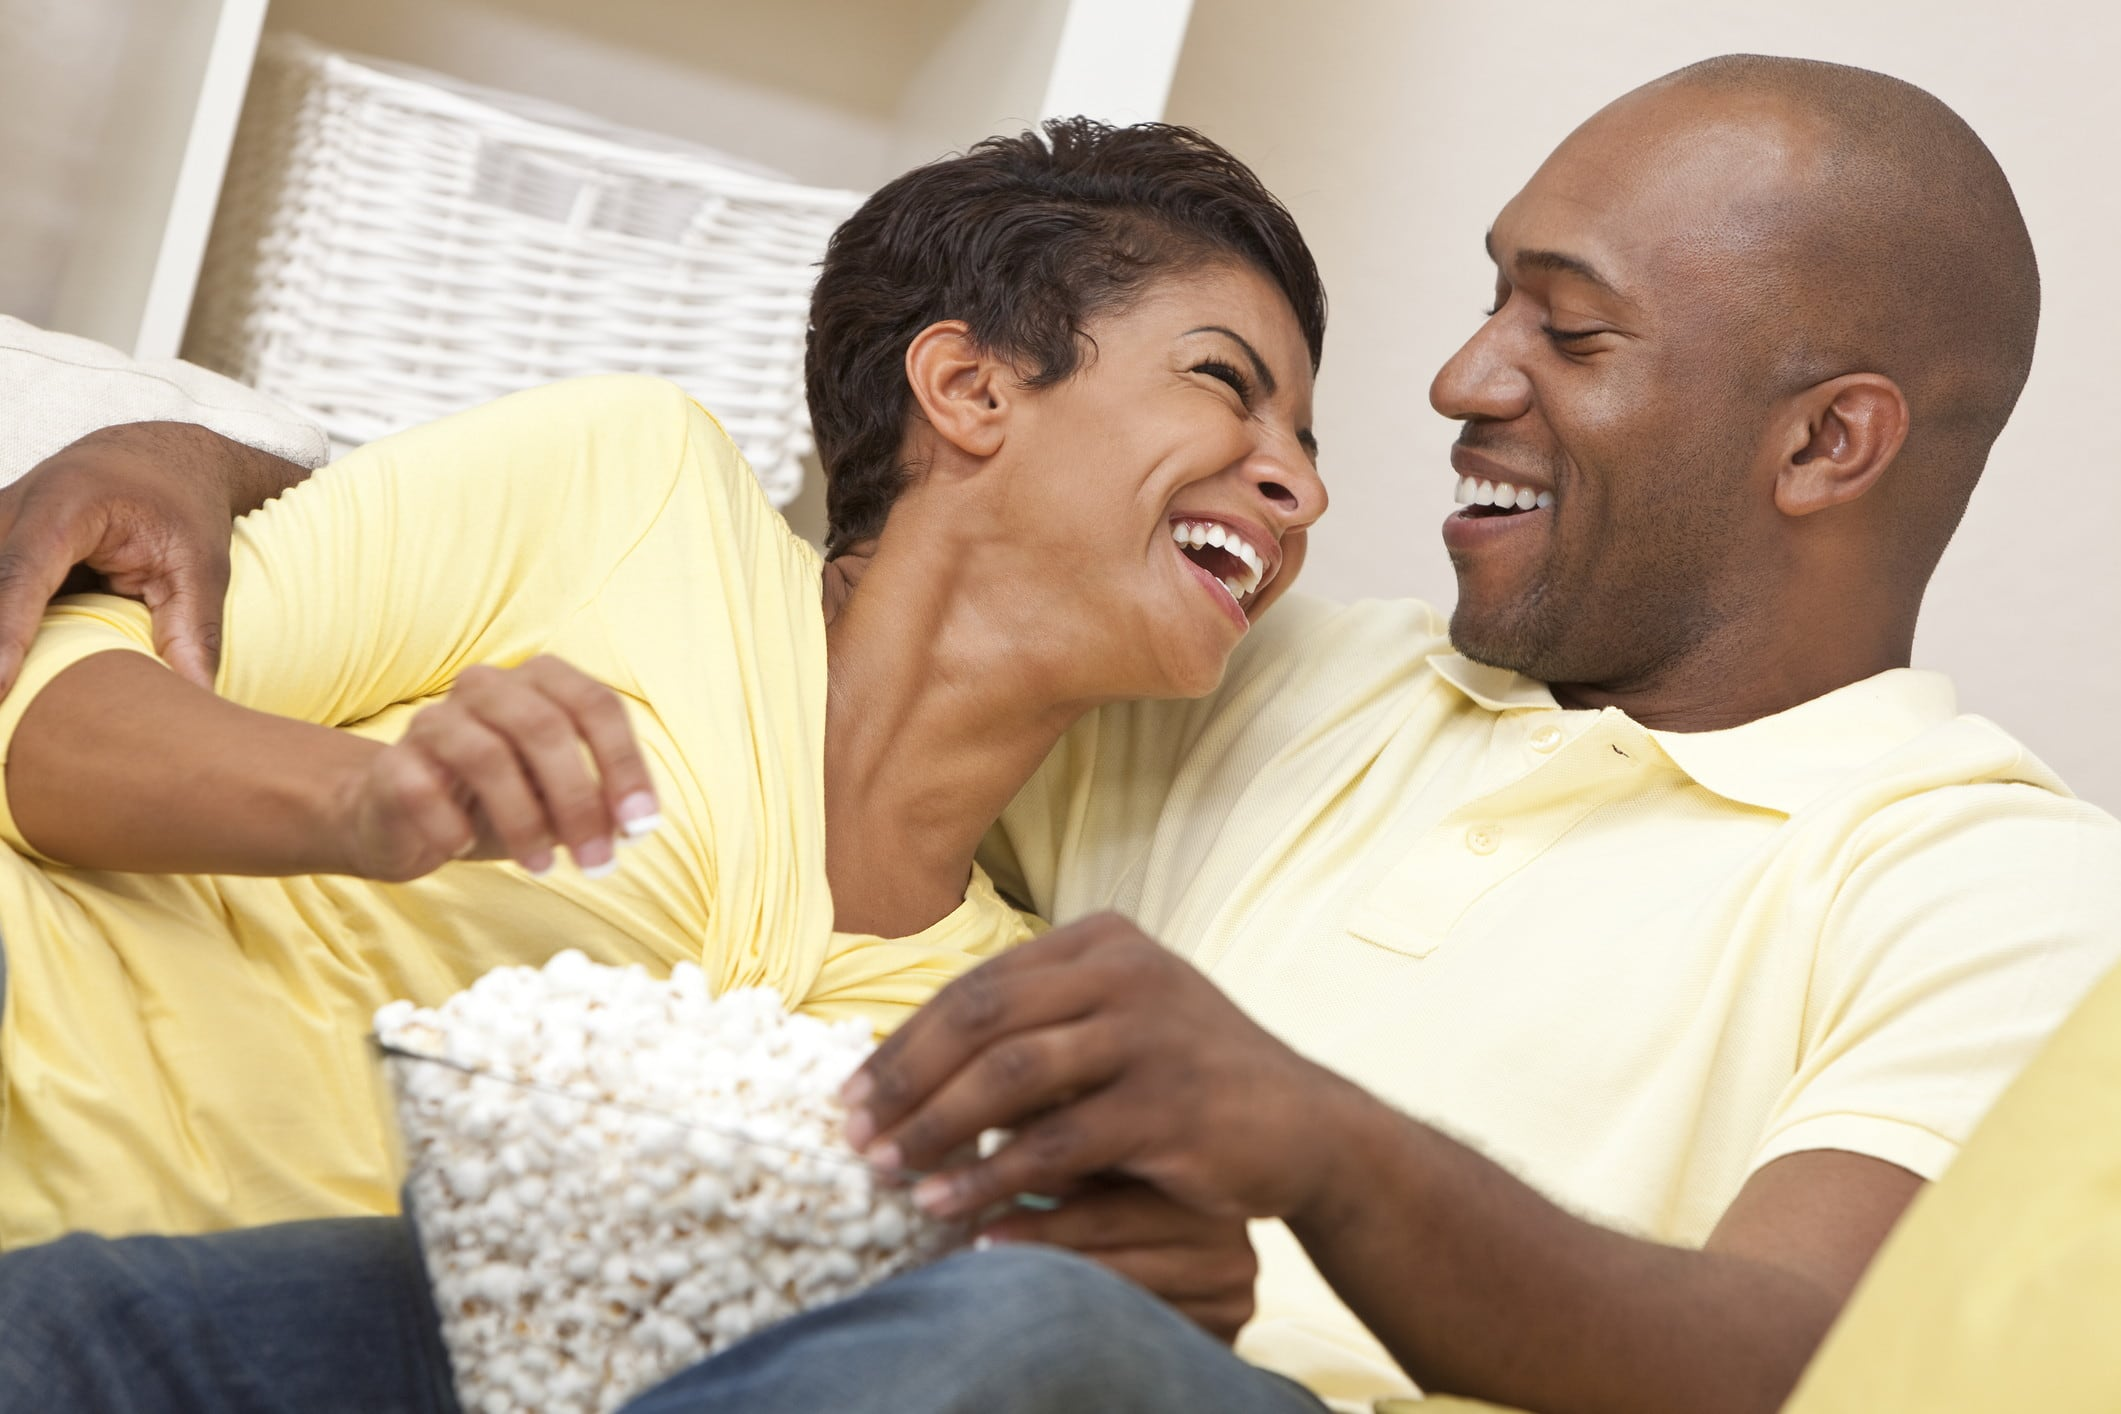 Health News: Gut-Check May be the Key to Marital Bliss